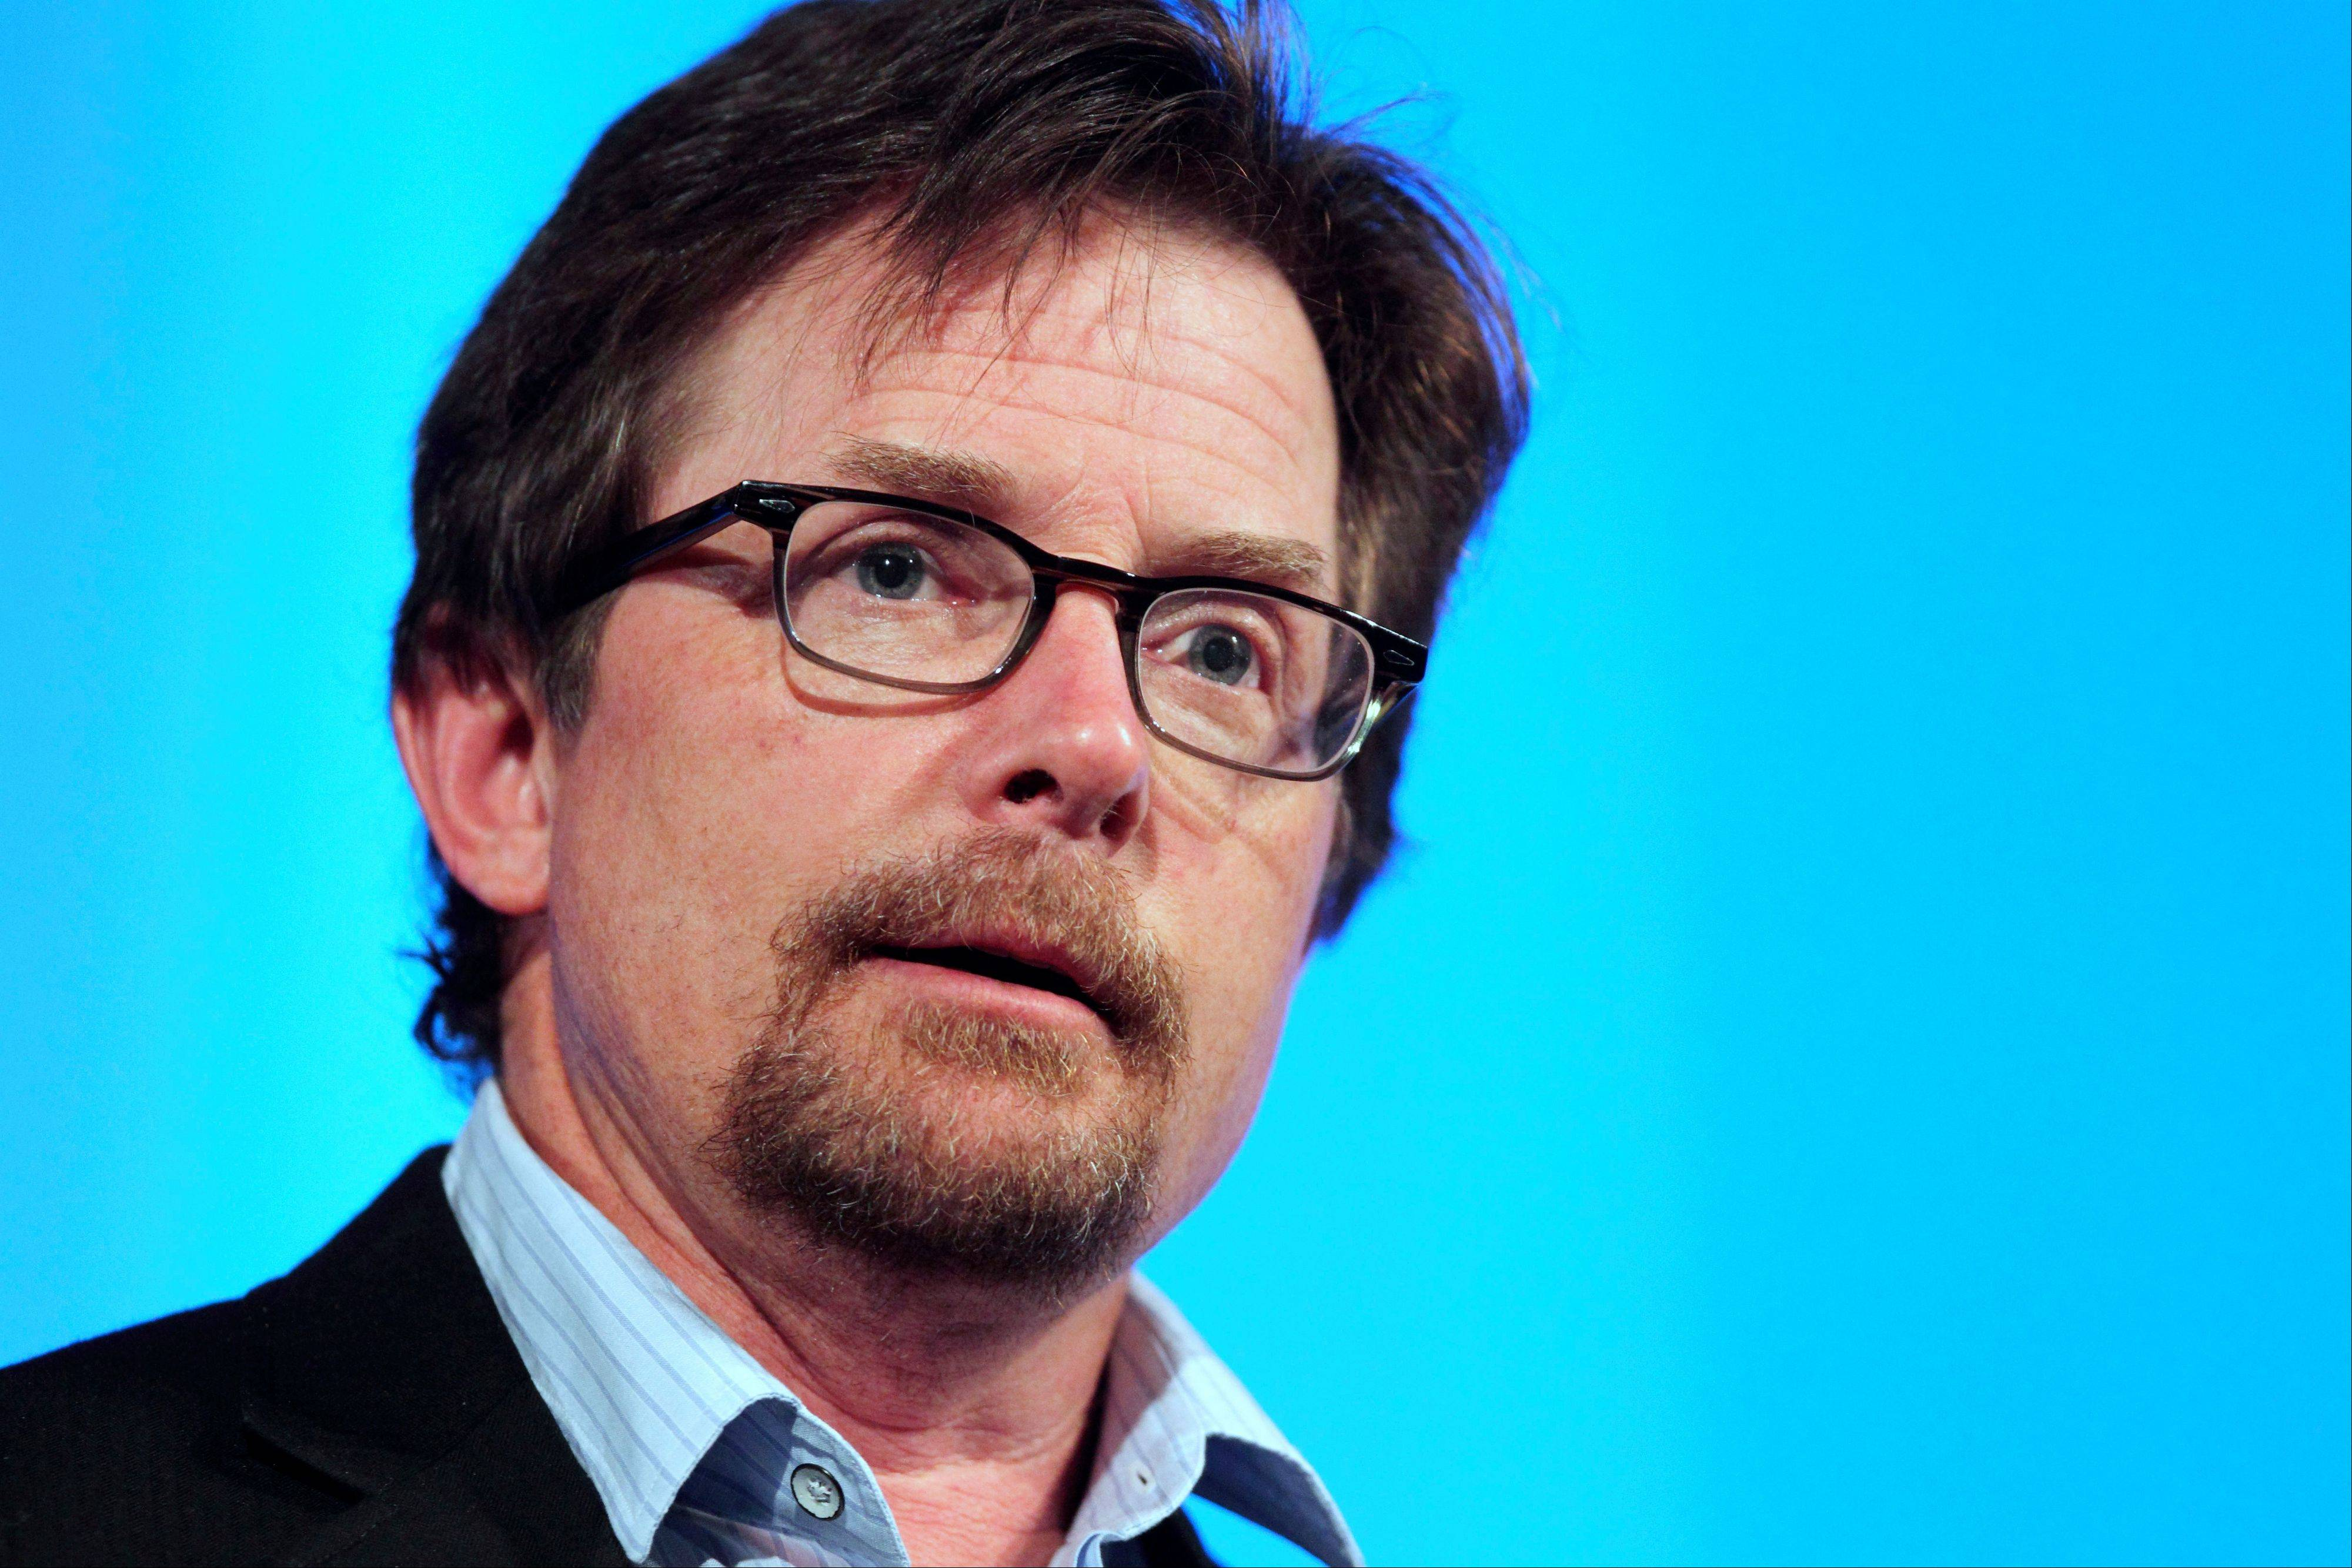 Michael J. Fox may soon be returning to series TV and starring in a sitcom.